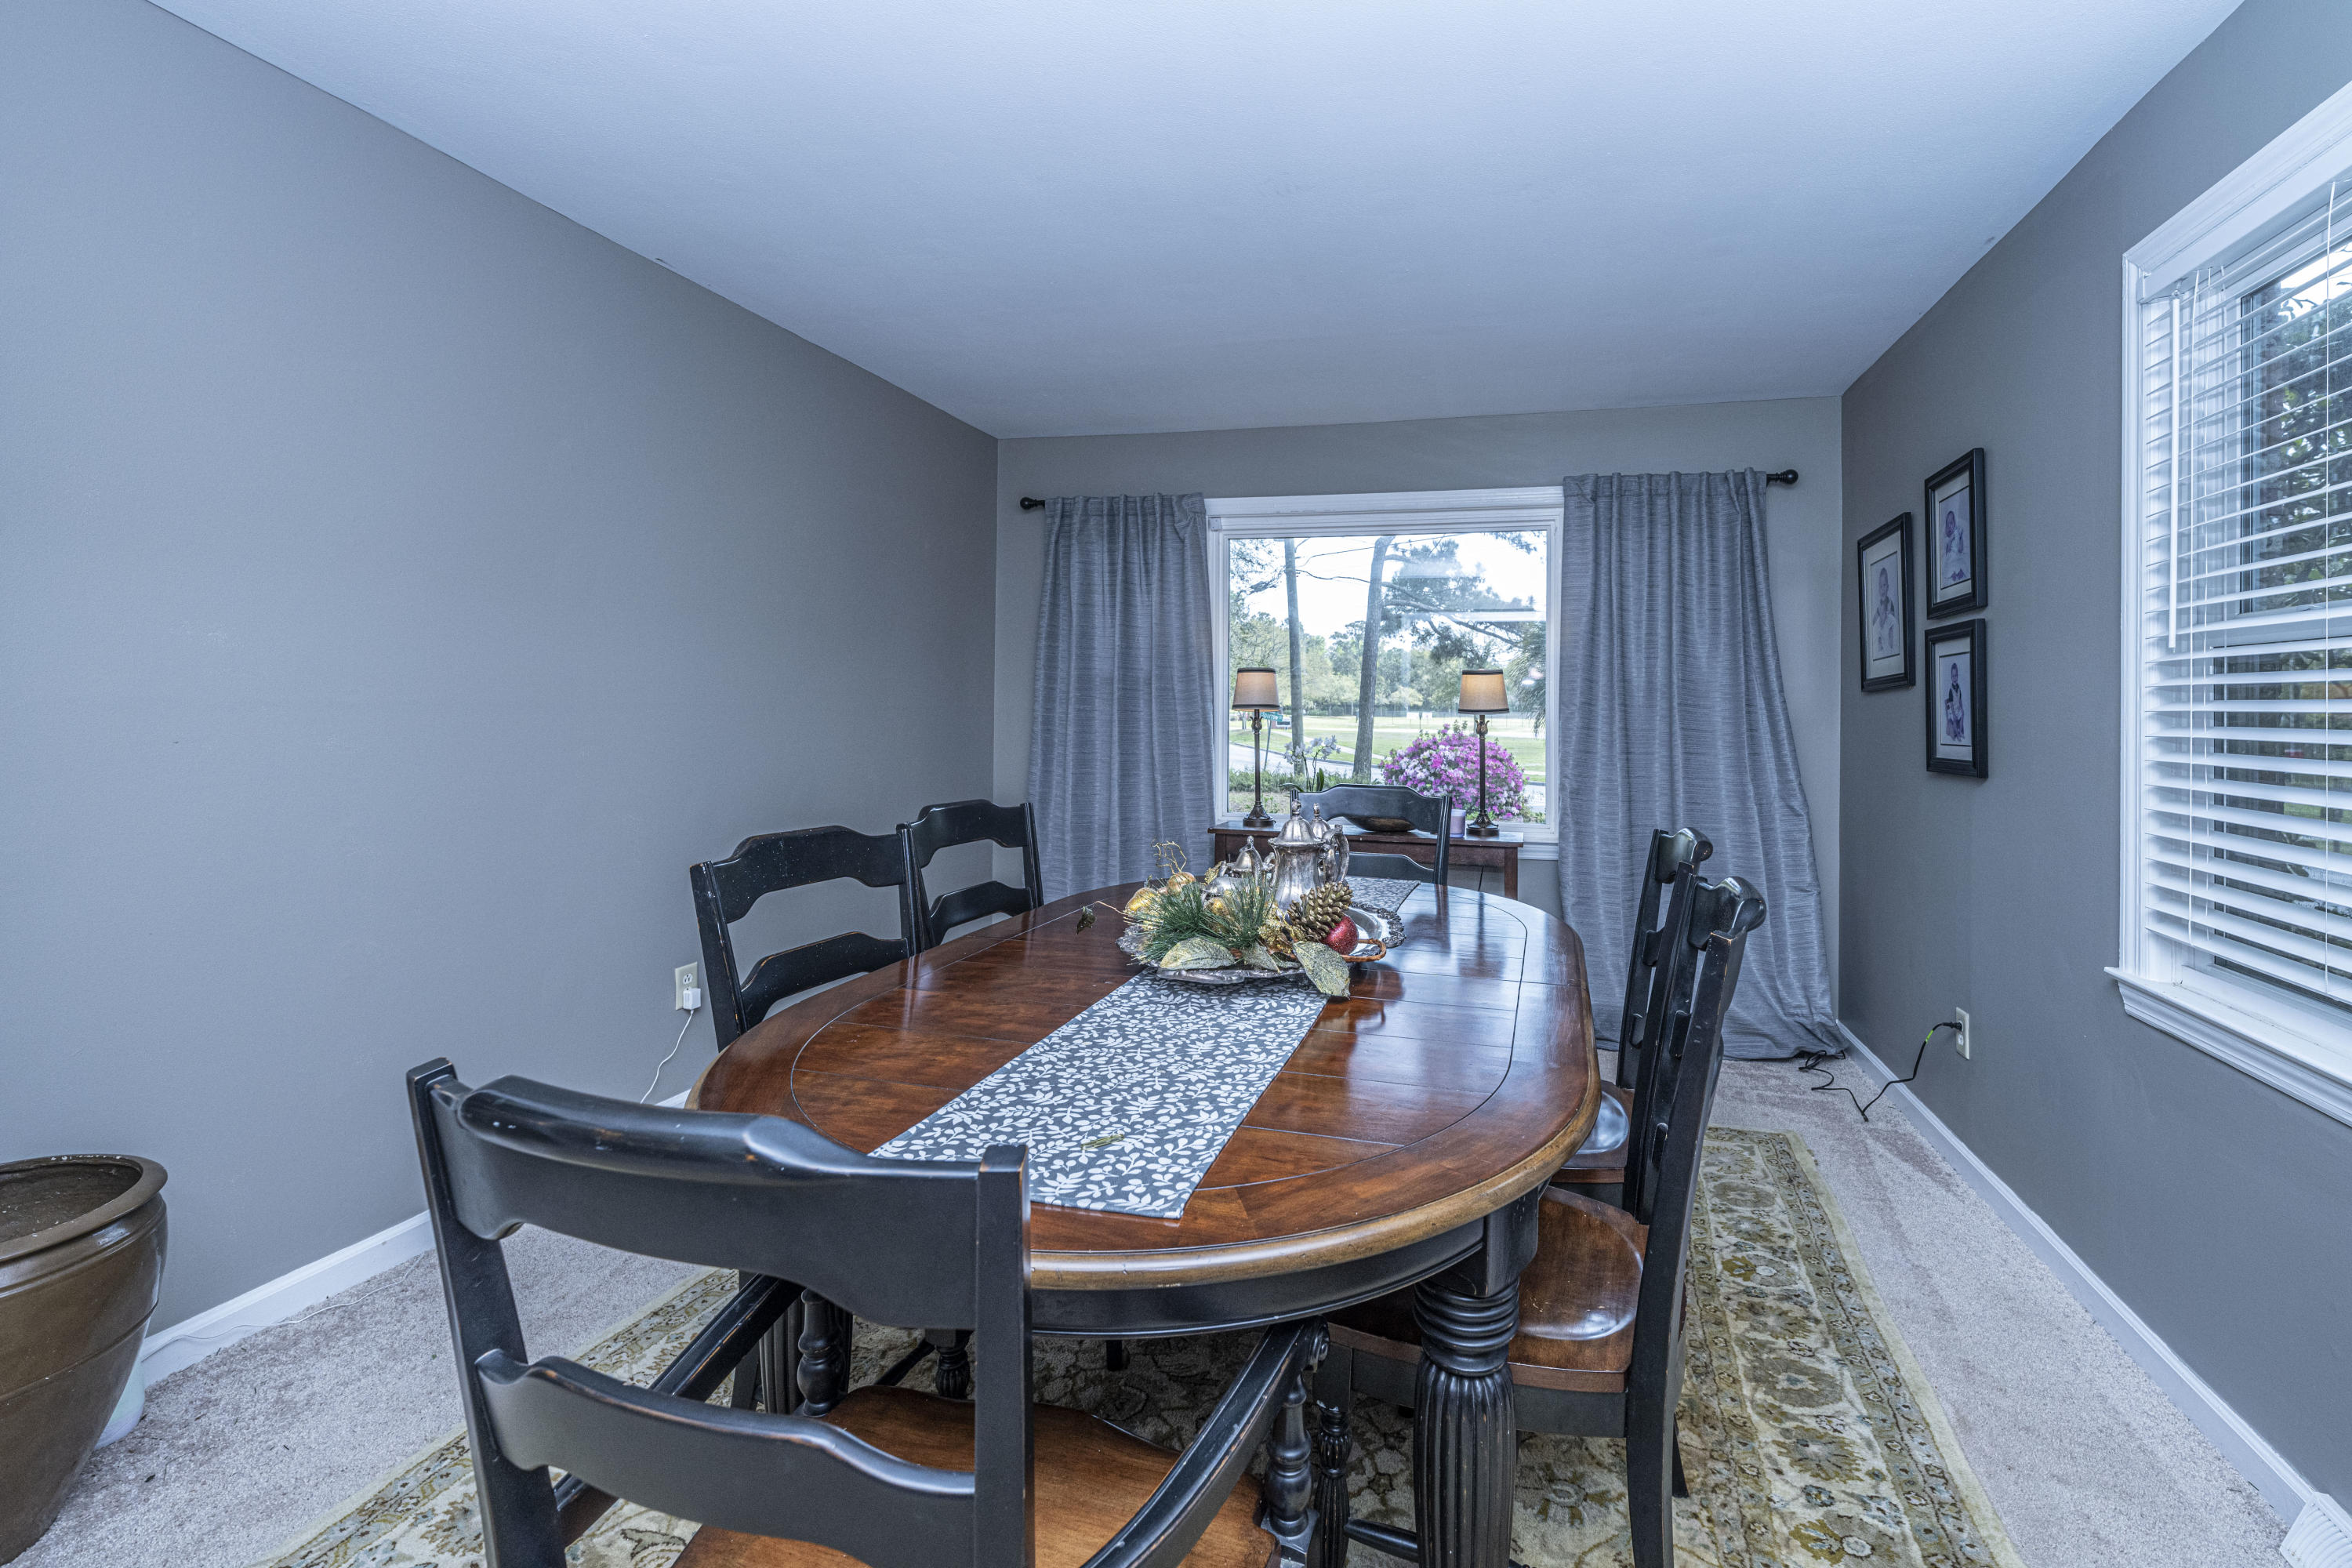 Stiles Point Homes For Sale - 775 Sparrow, Charleston, SC - 23